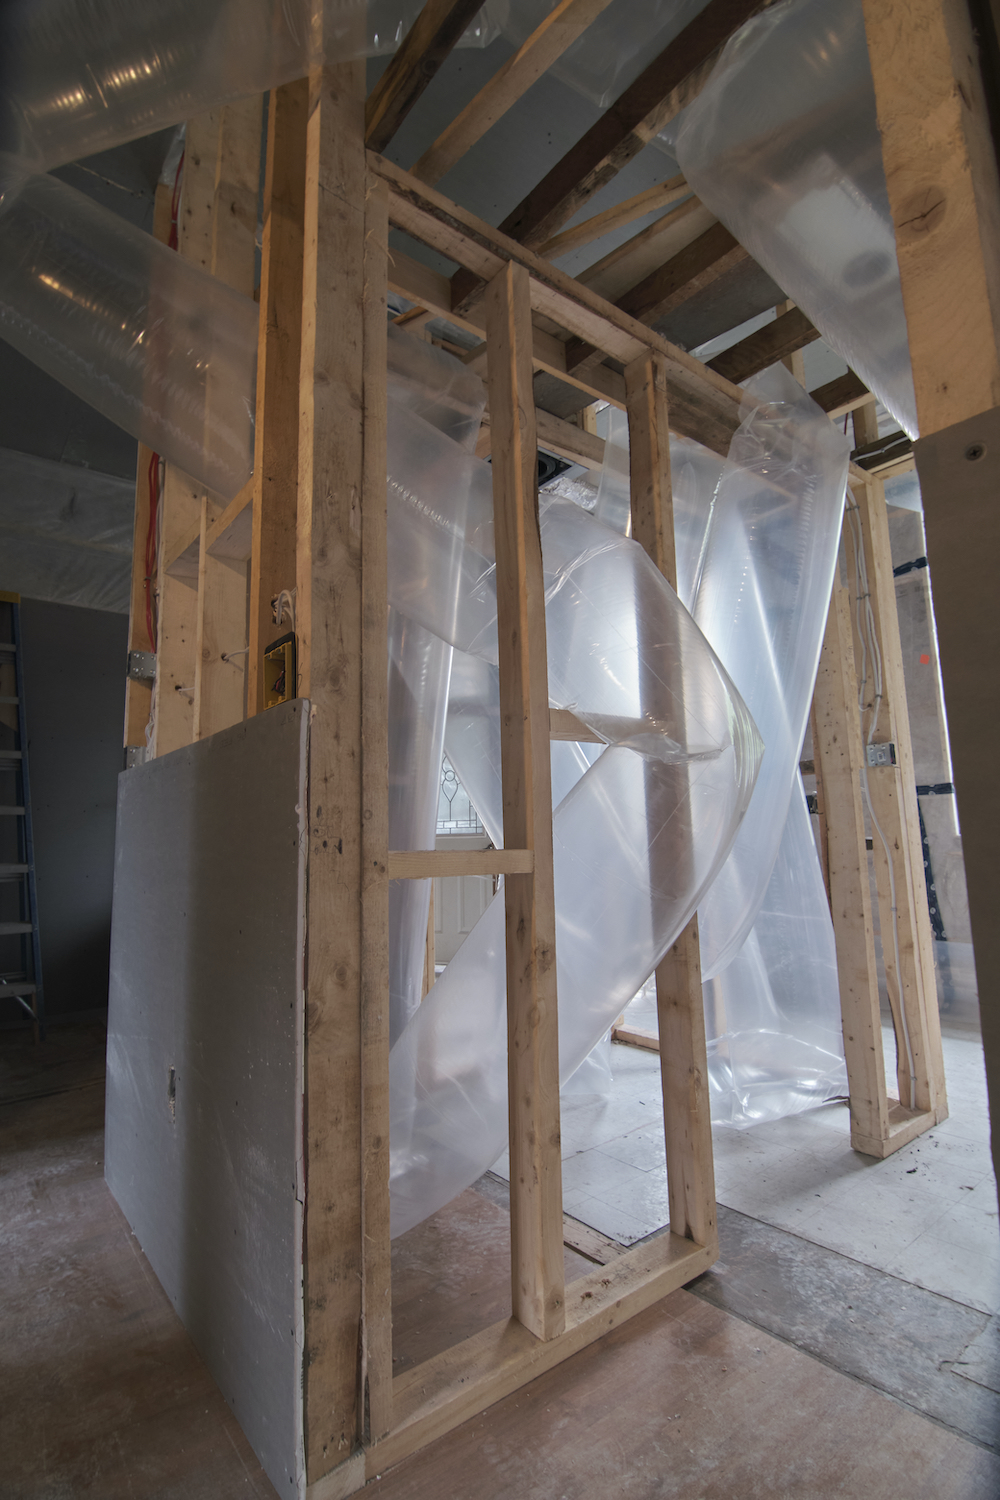 Inflated tubes of transparent plastic are woven through the bare stud walls of an under-construction house.